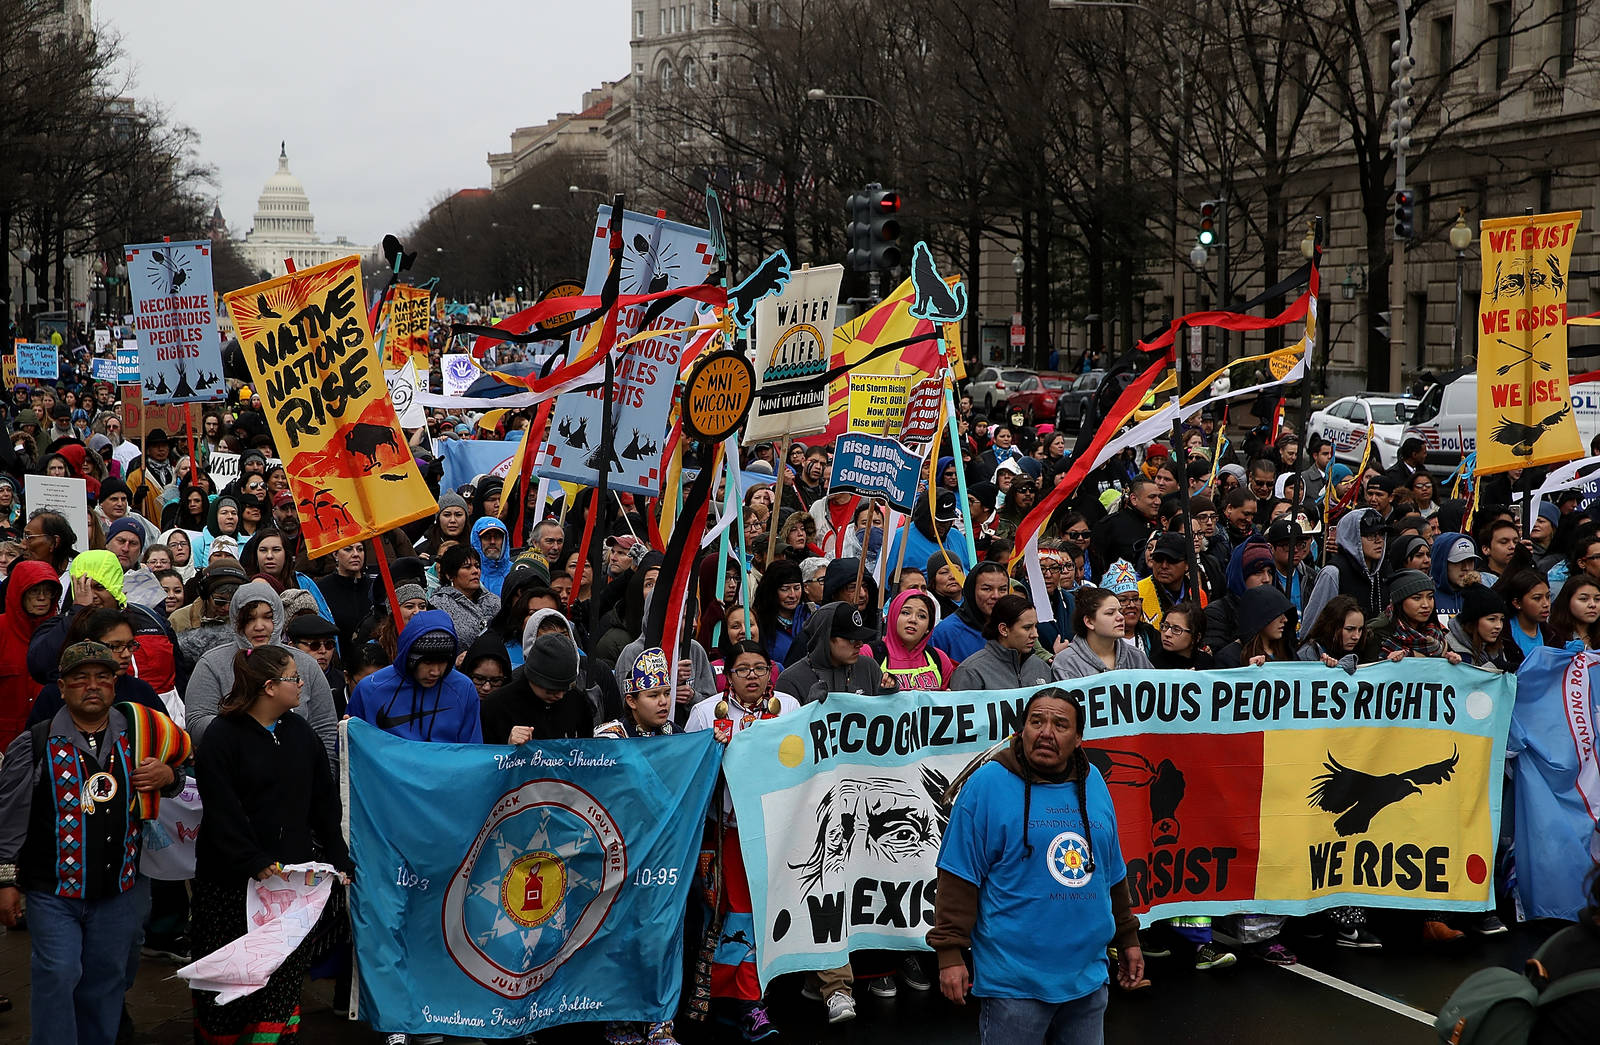 For a movement historically led by white males, advocates from low-income and minority communities across the country are providing a powerful, new voice on environmental issues. Credit: Justin Sullivan/Getty Images